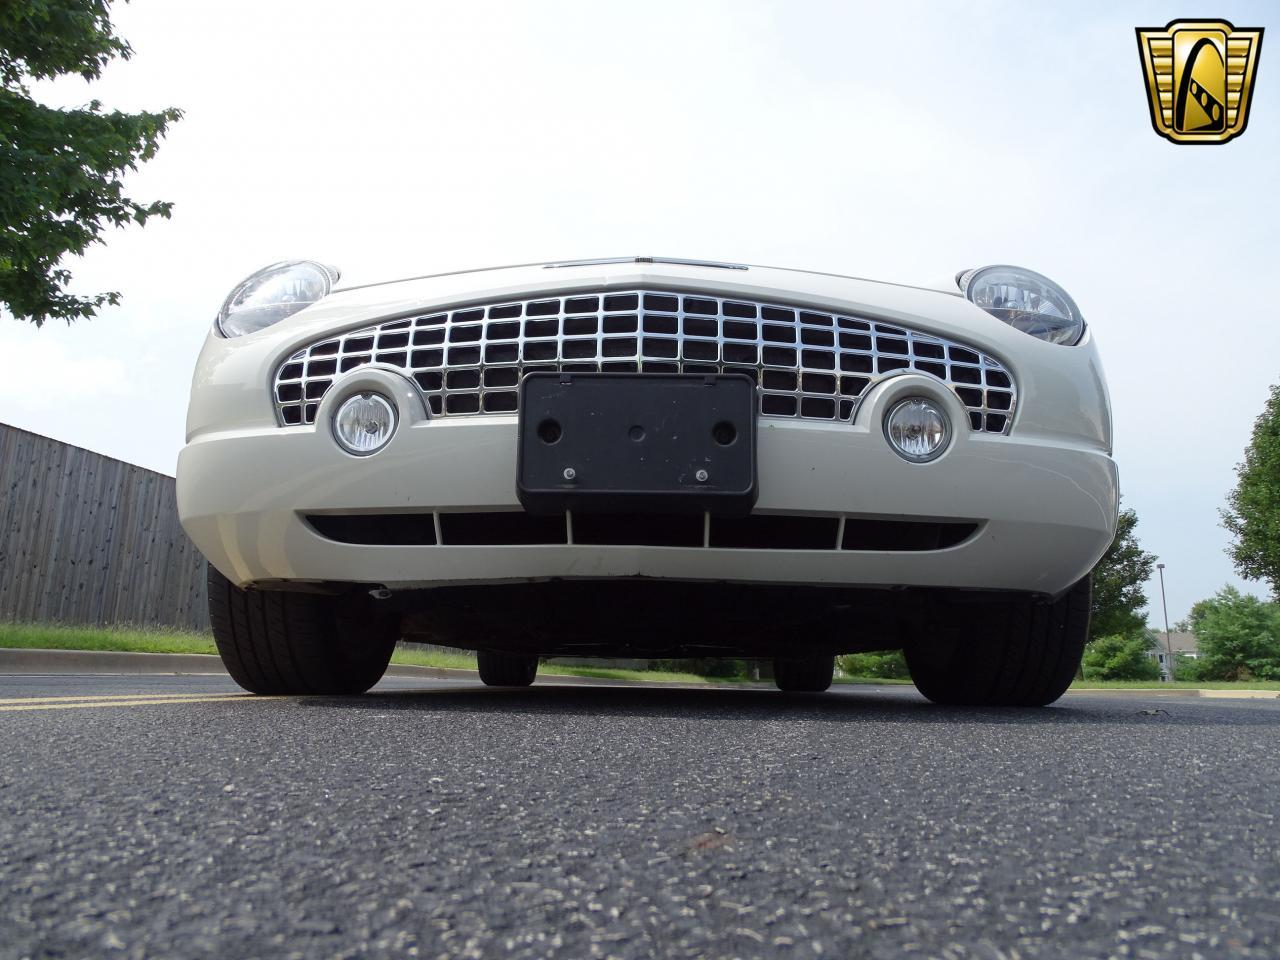 Large Picture of '03 Thunderbird located in Illinois - $13,500.00 Offered by Gateway Classic Cars - St. Louis - QB5Q